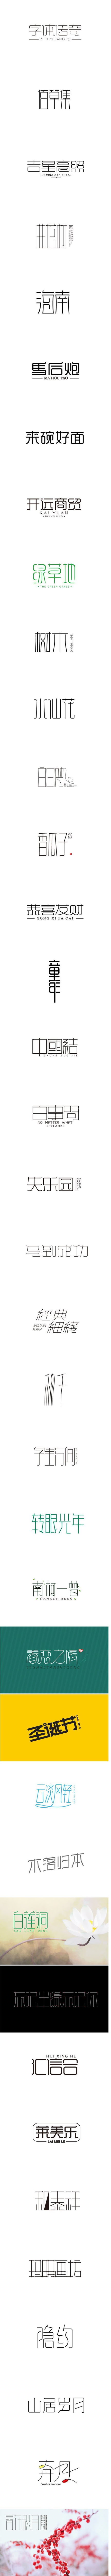 Font Design Chinese Font Design on Typography Served   - ROO - #Chinese #Design #Font #ROO #Served #Typography #chinesetypography Font Design Chinese Font Design on Typography Served   - ROO - #Chinese #Design #Font #ROO #Served #Typography #chinesetypography